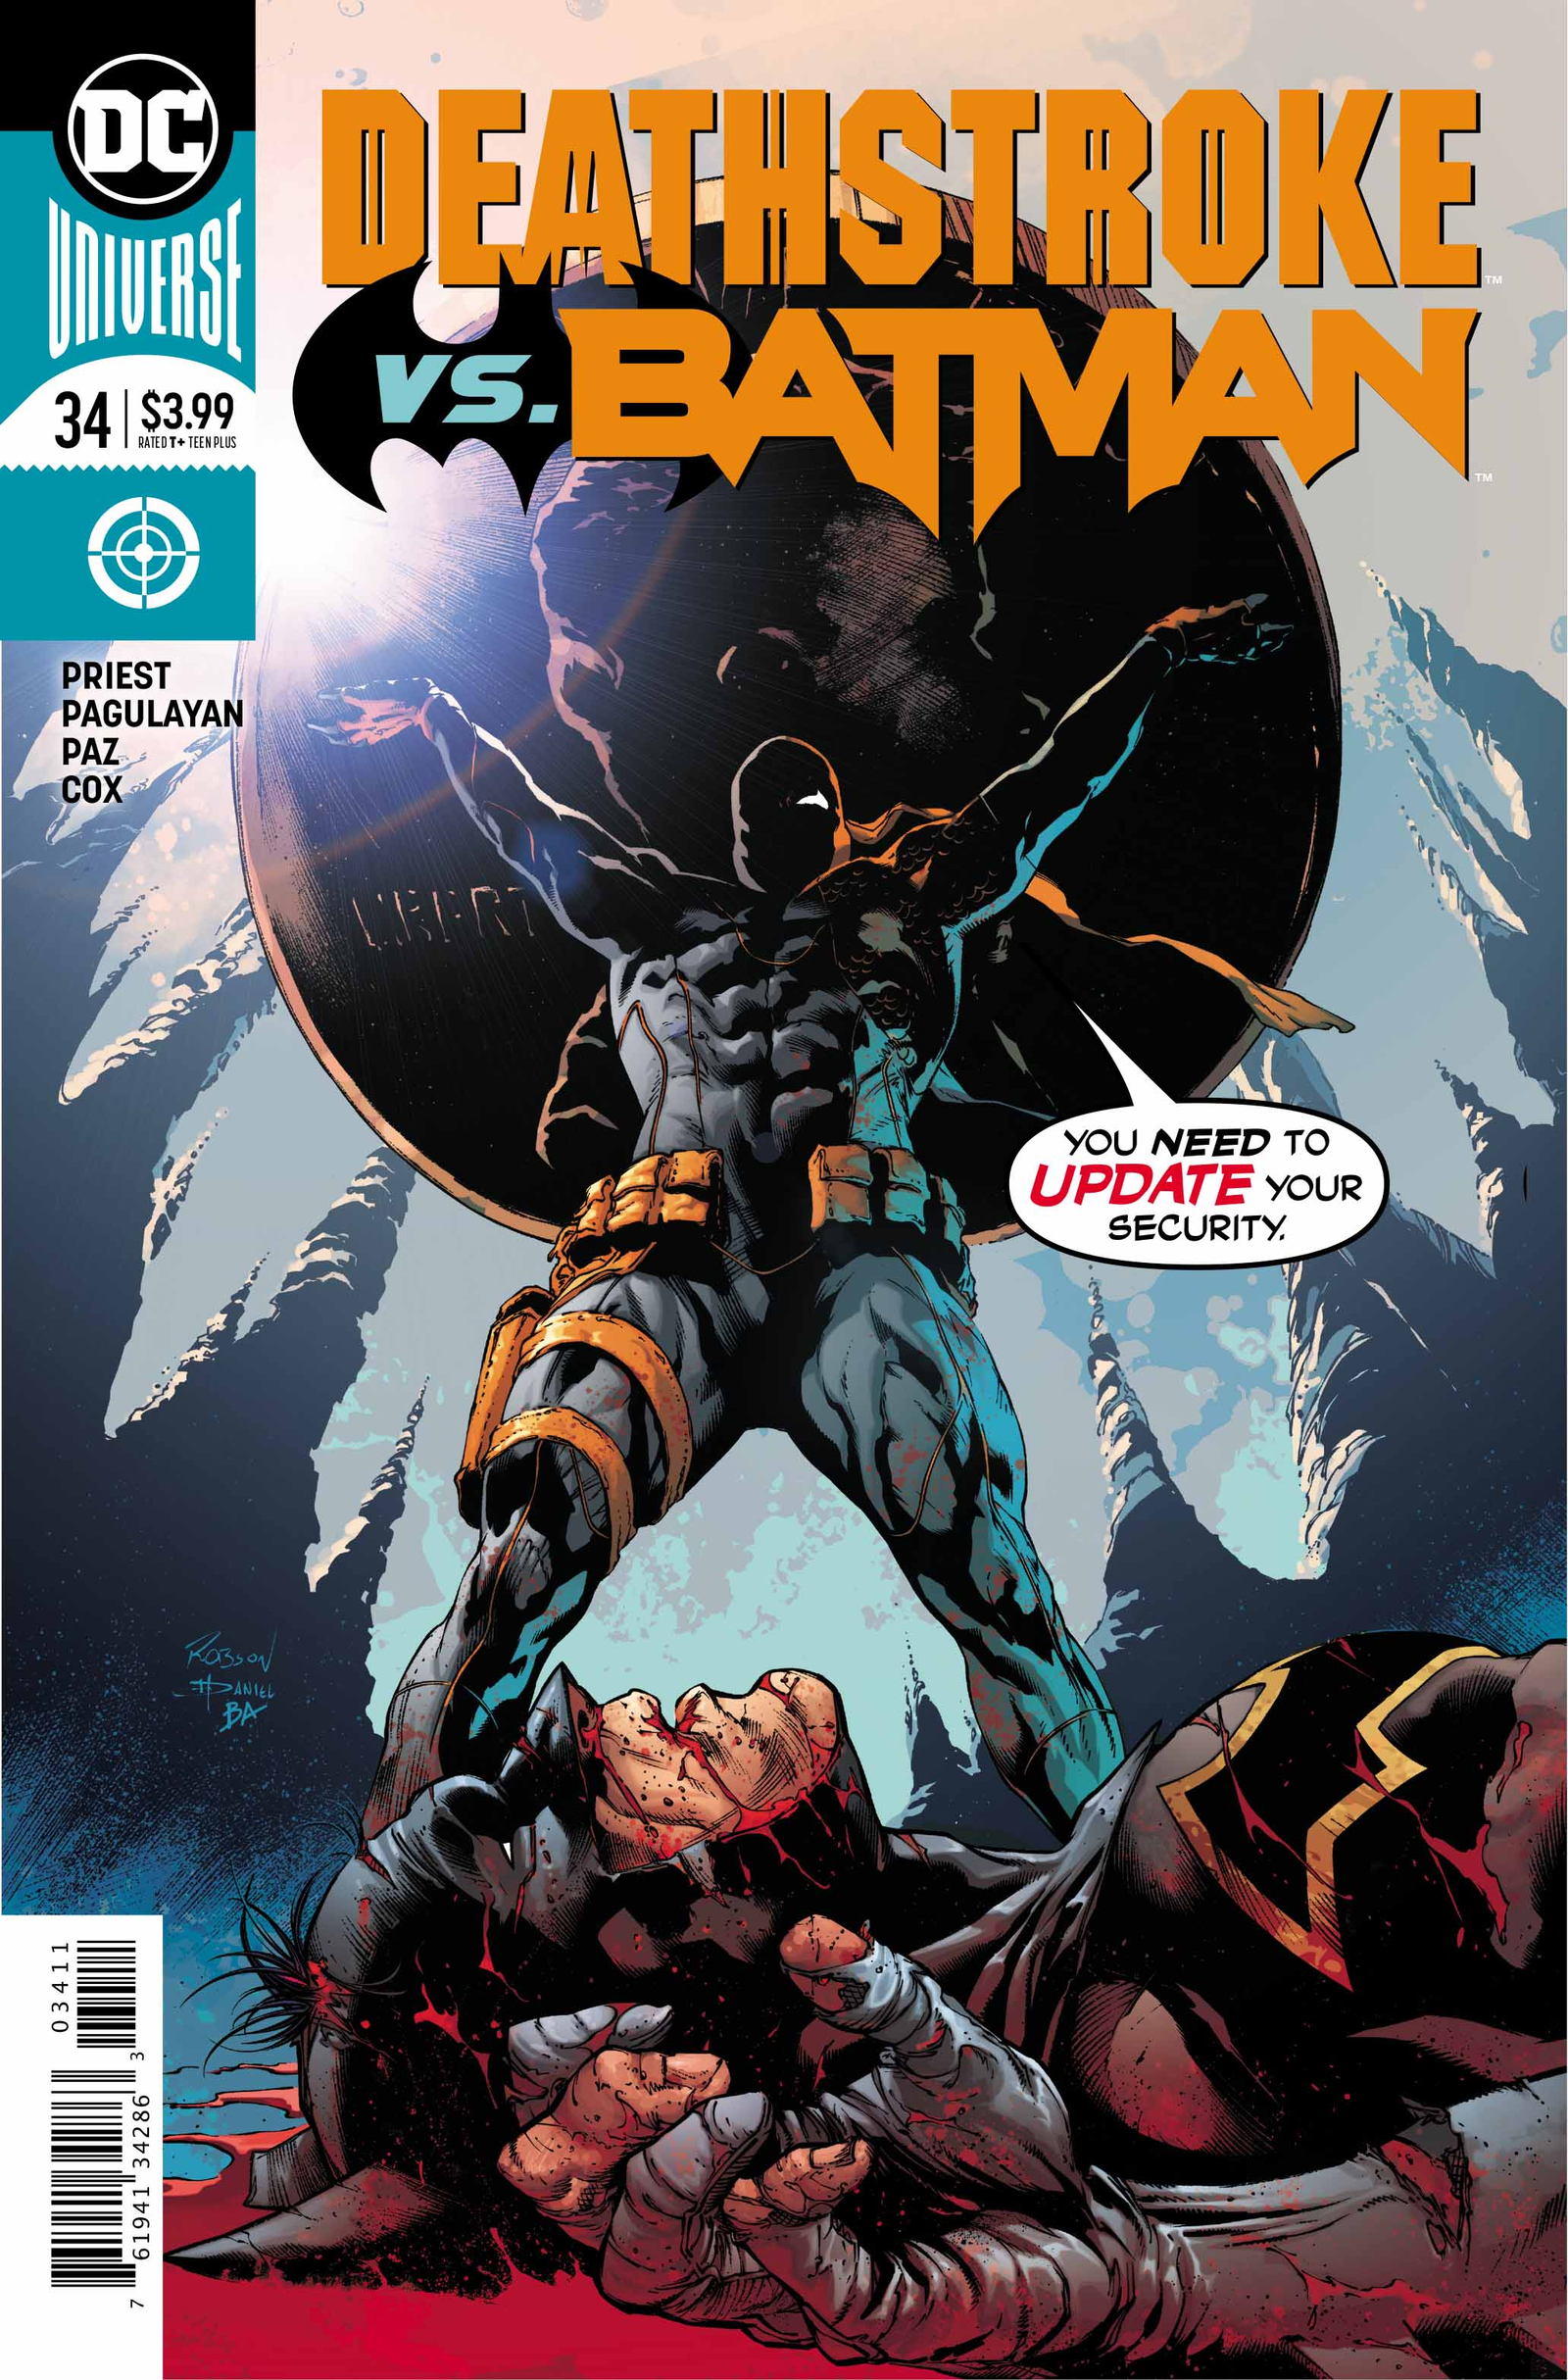 Cover by Robson Rocha, Daniel Henriques, and Brad Anderson